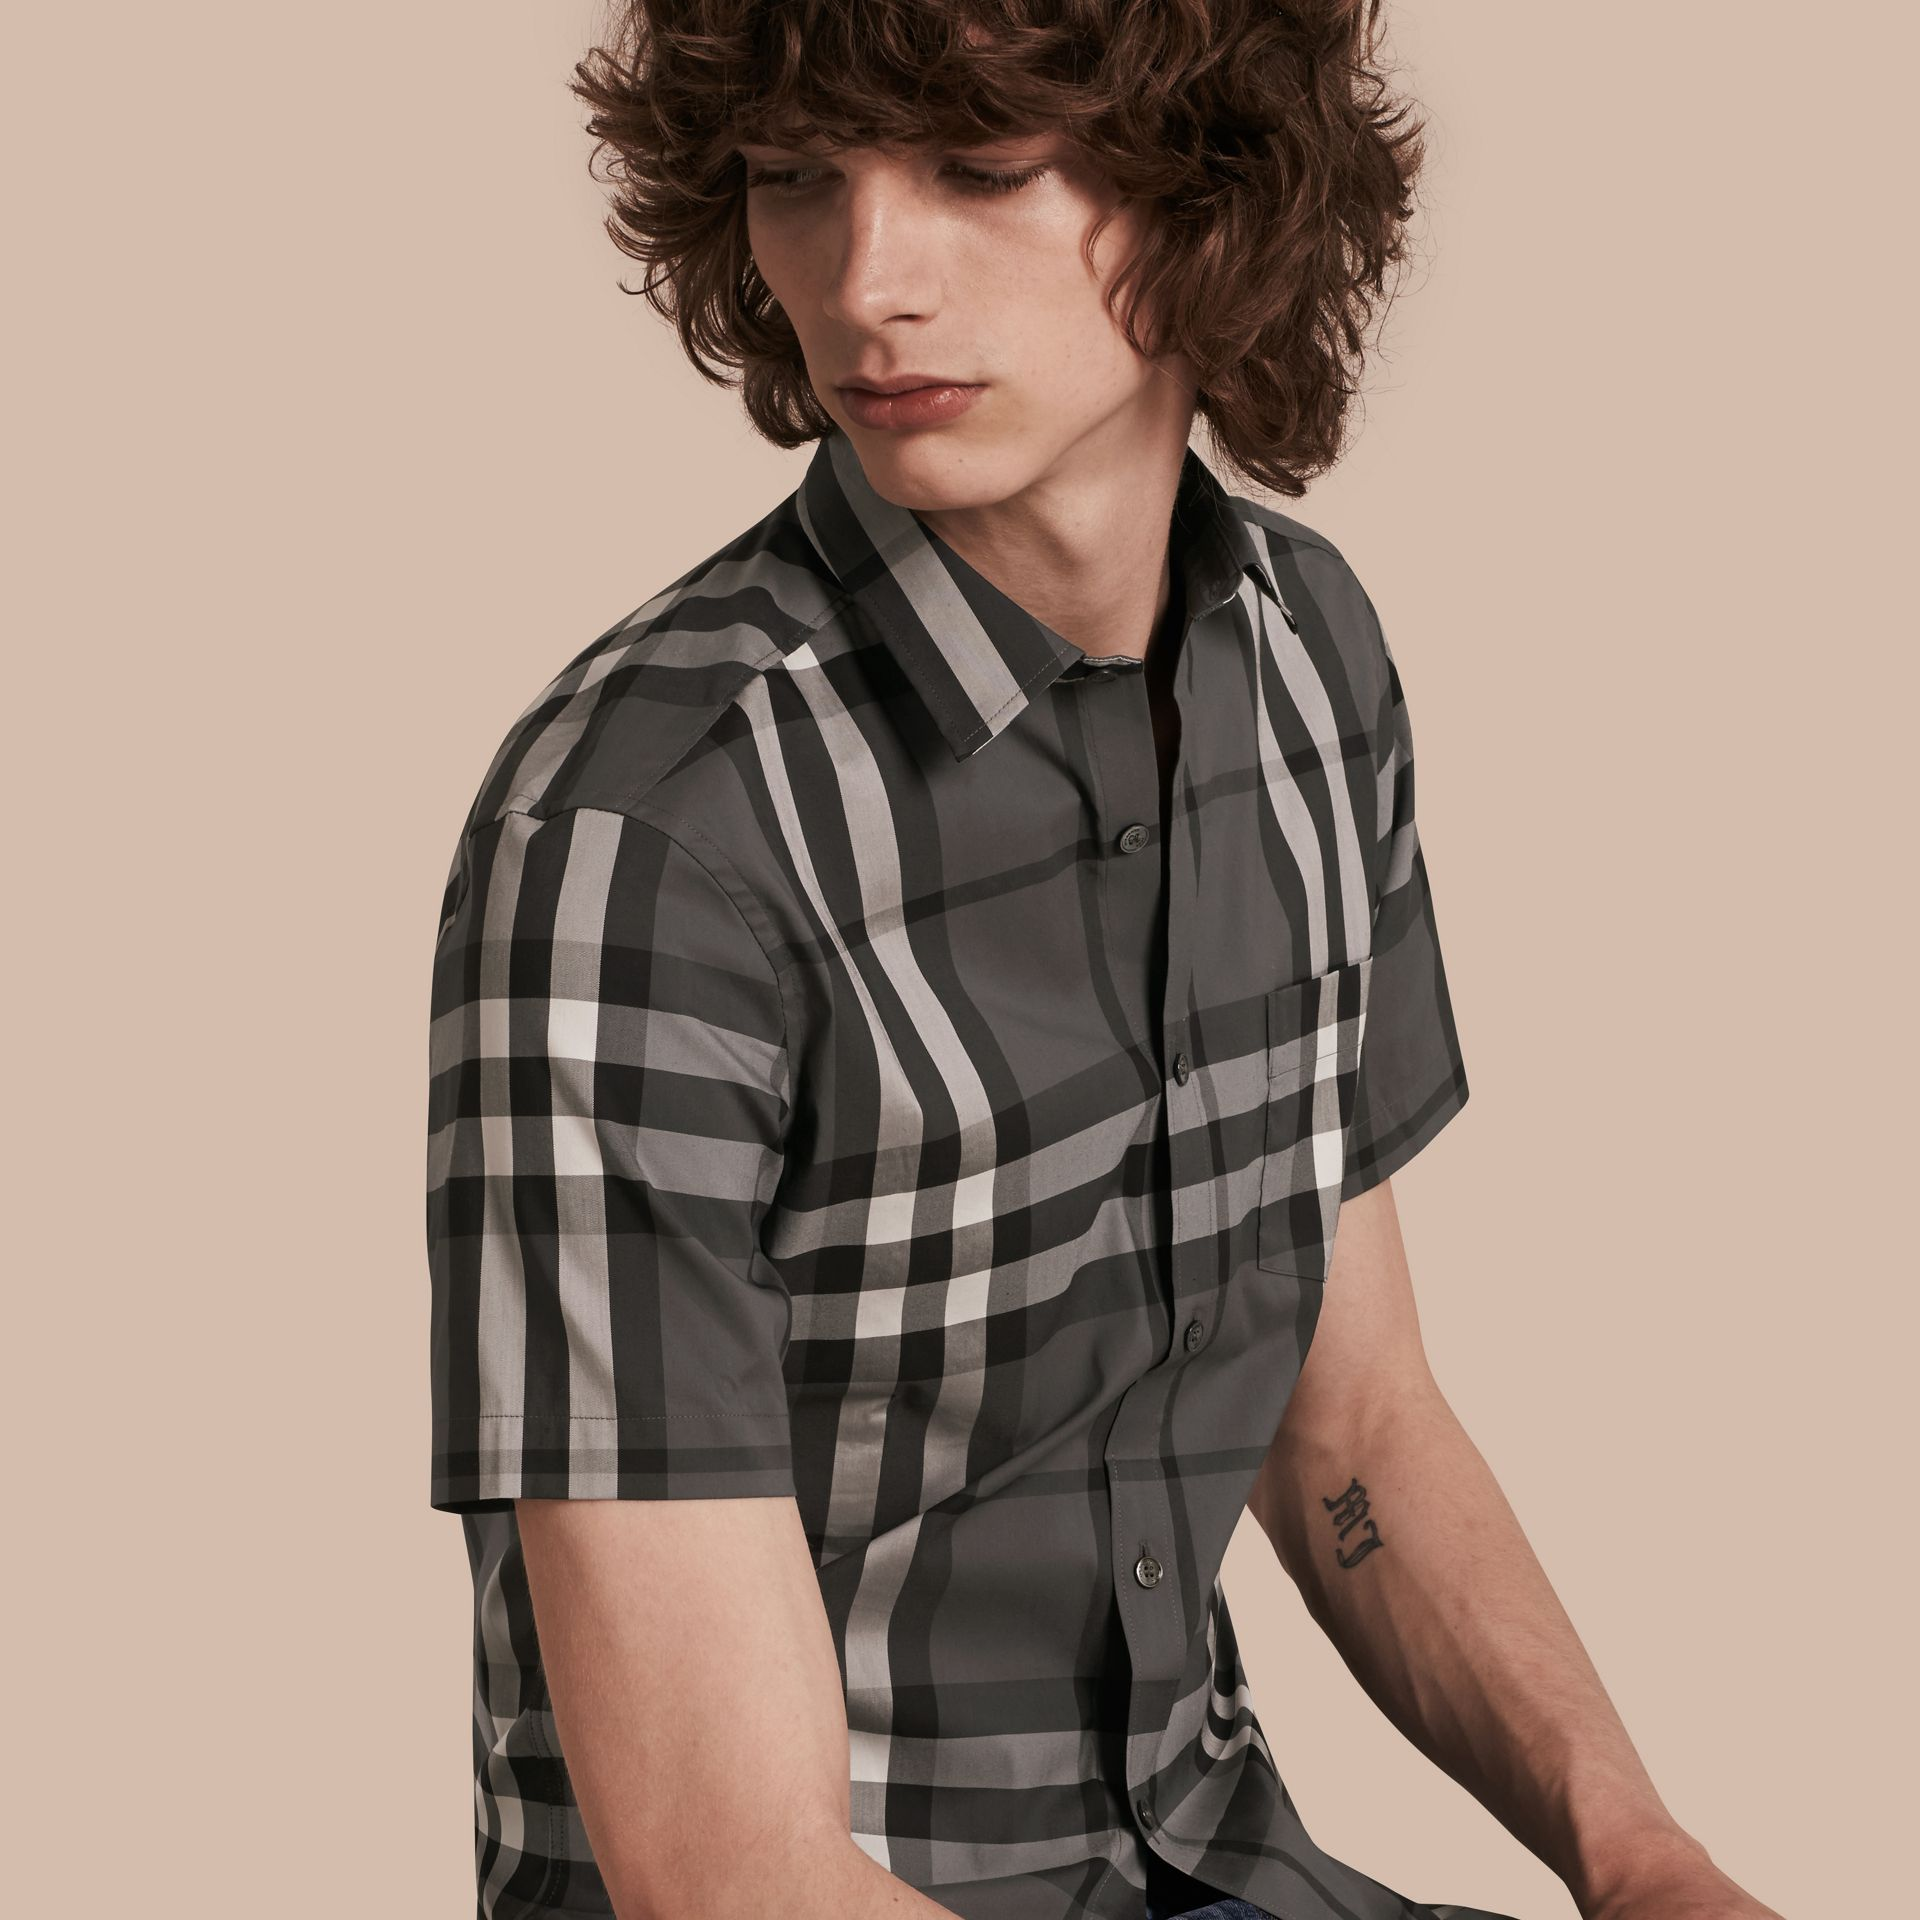 Charcoal Short-sleeved Check Stretch Cotton Shirt Charcoal - gallery image 1